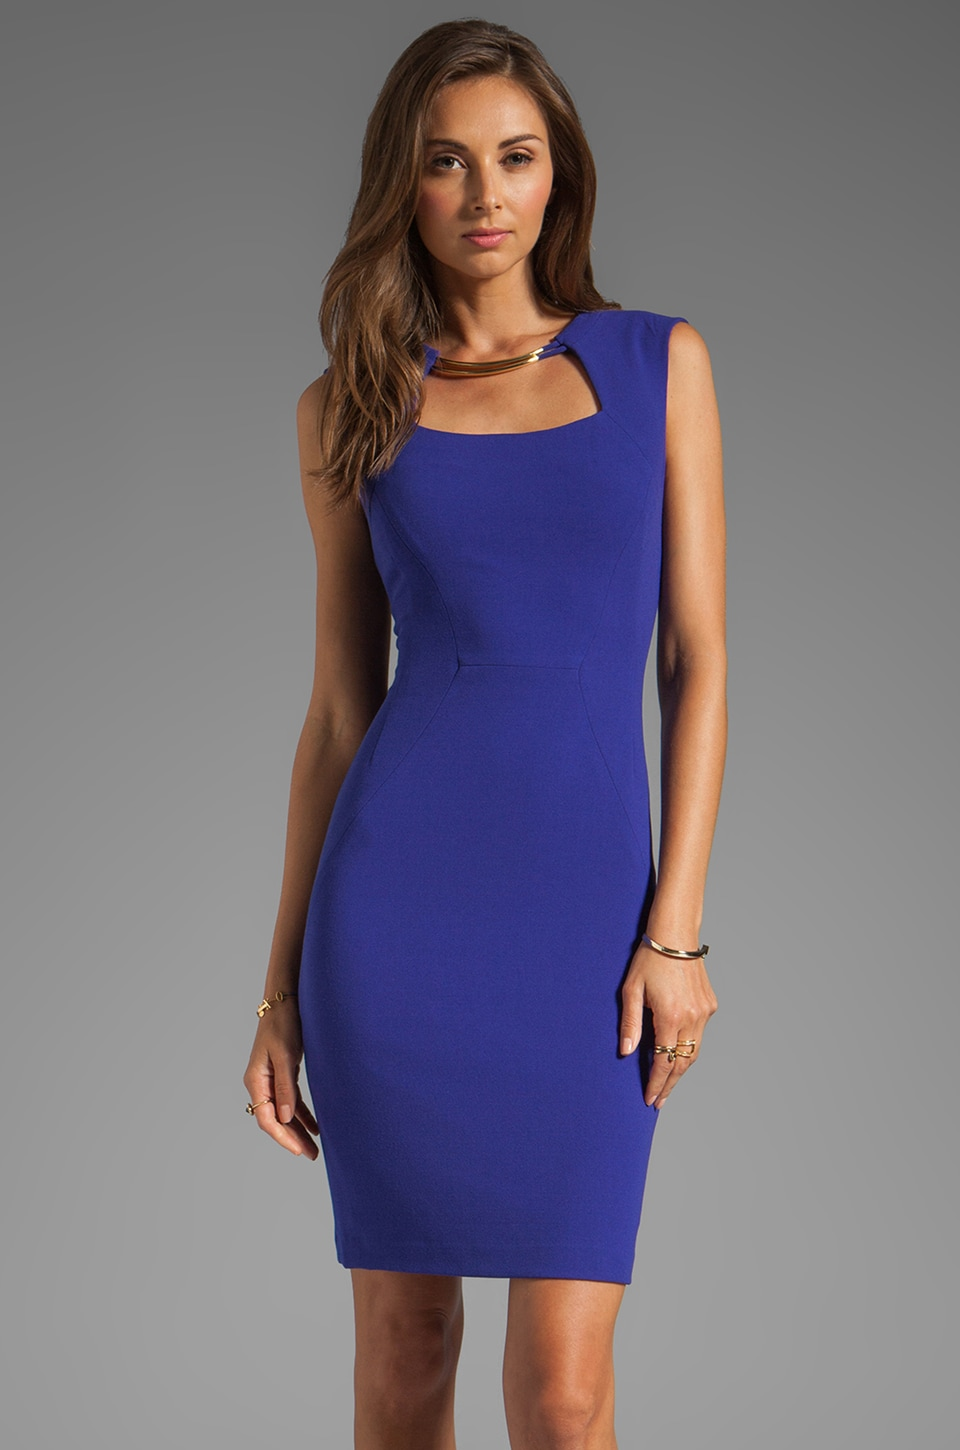 BCBGMAXAZRIA Sleeveless Dress in Dark Regal Blue